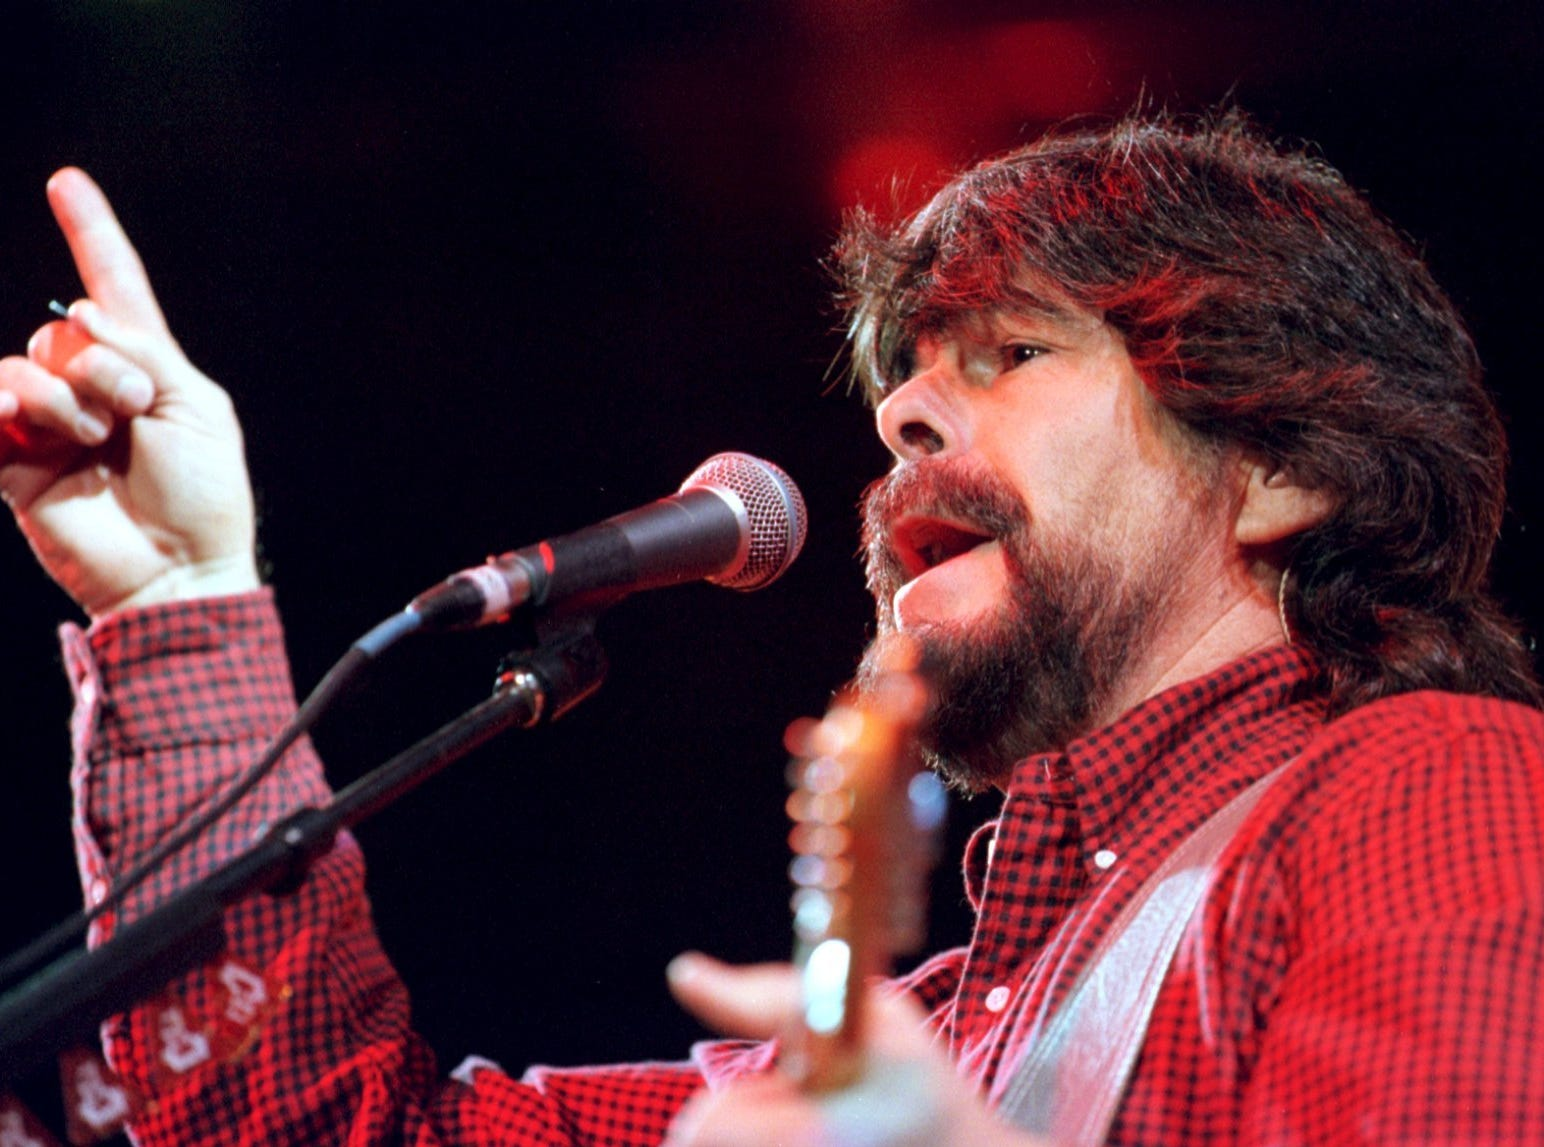 Randy Owen, lead singer for the country group Alabama, gets the crowd going early in the band's performance during a 1998 show at Brown County Veterans Memorial Arena.